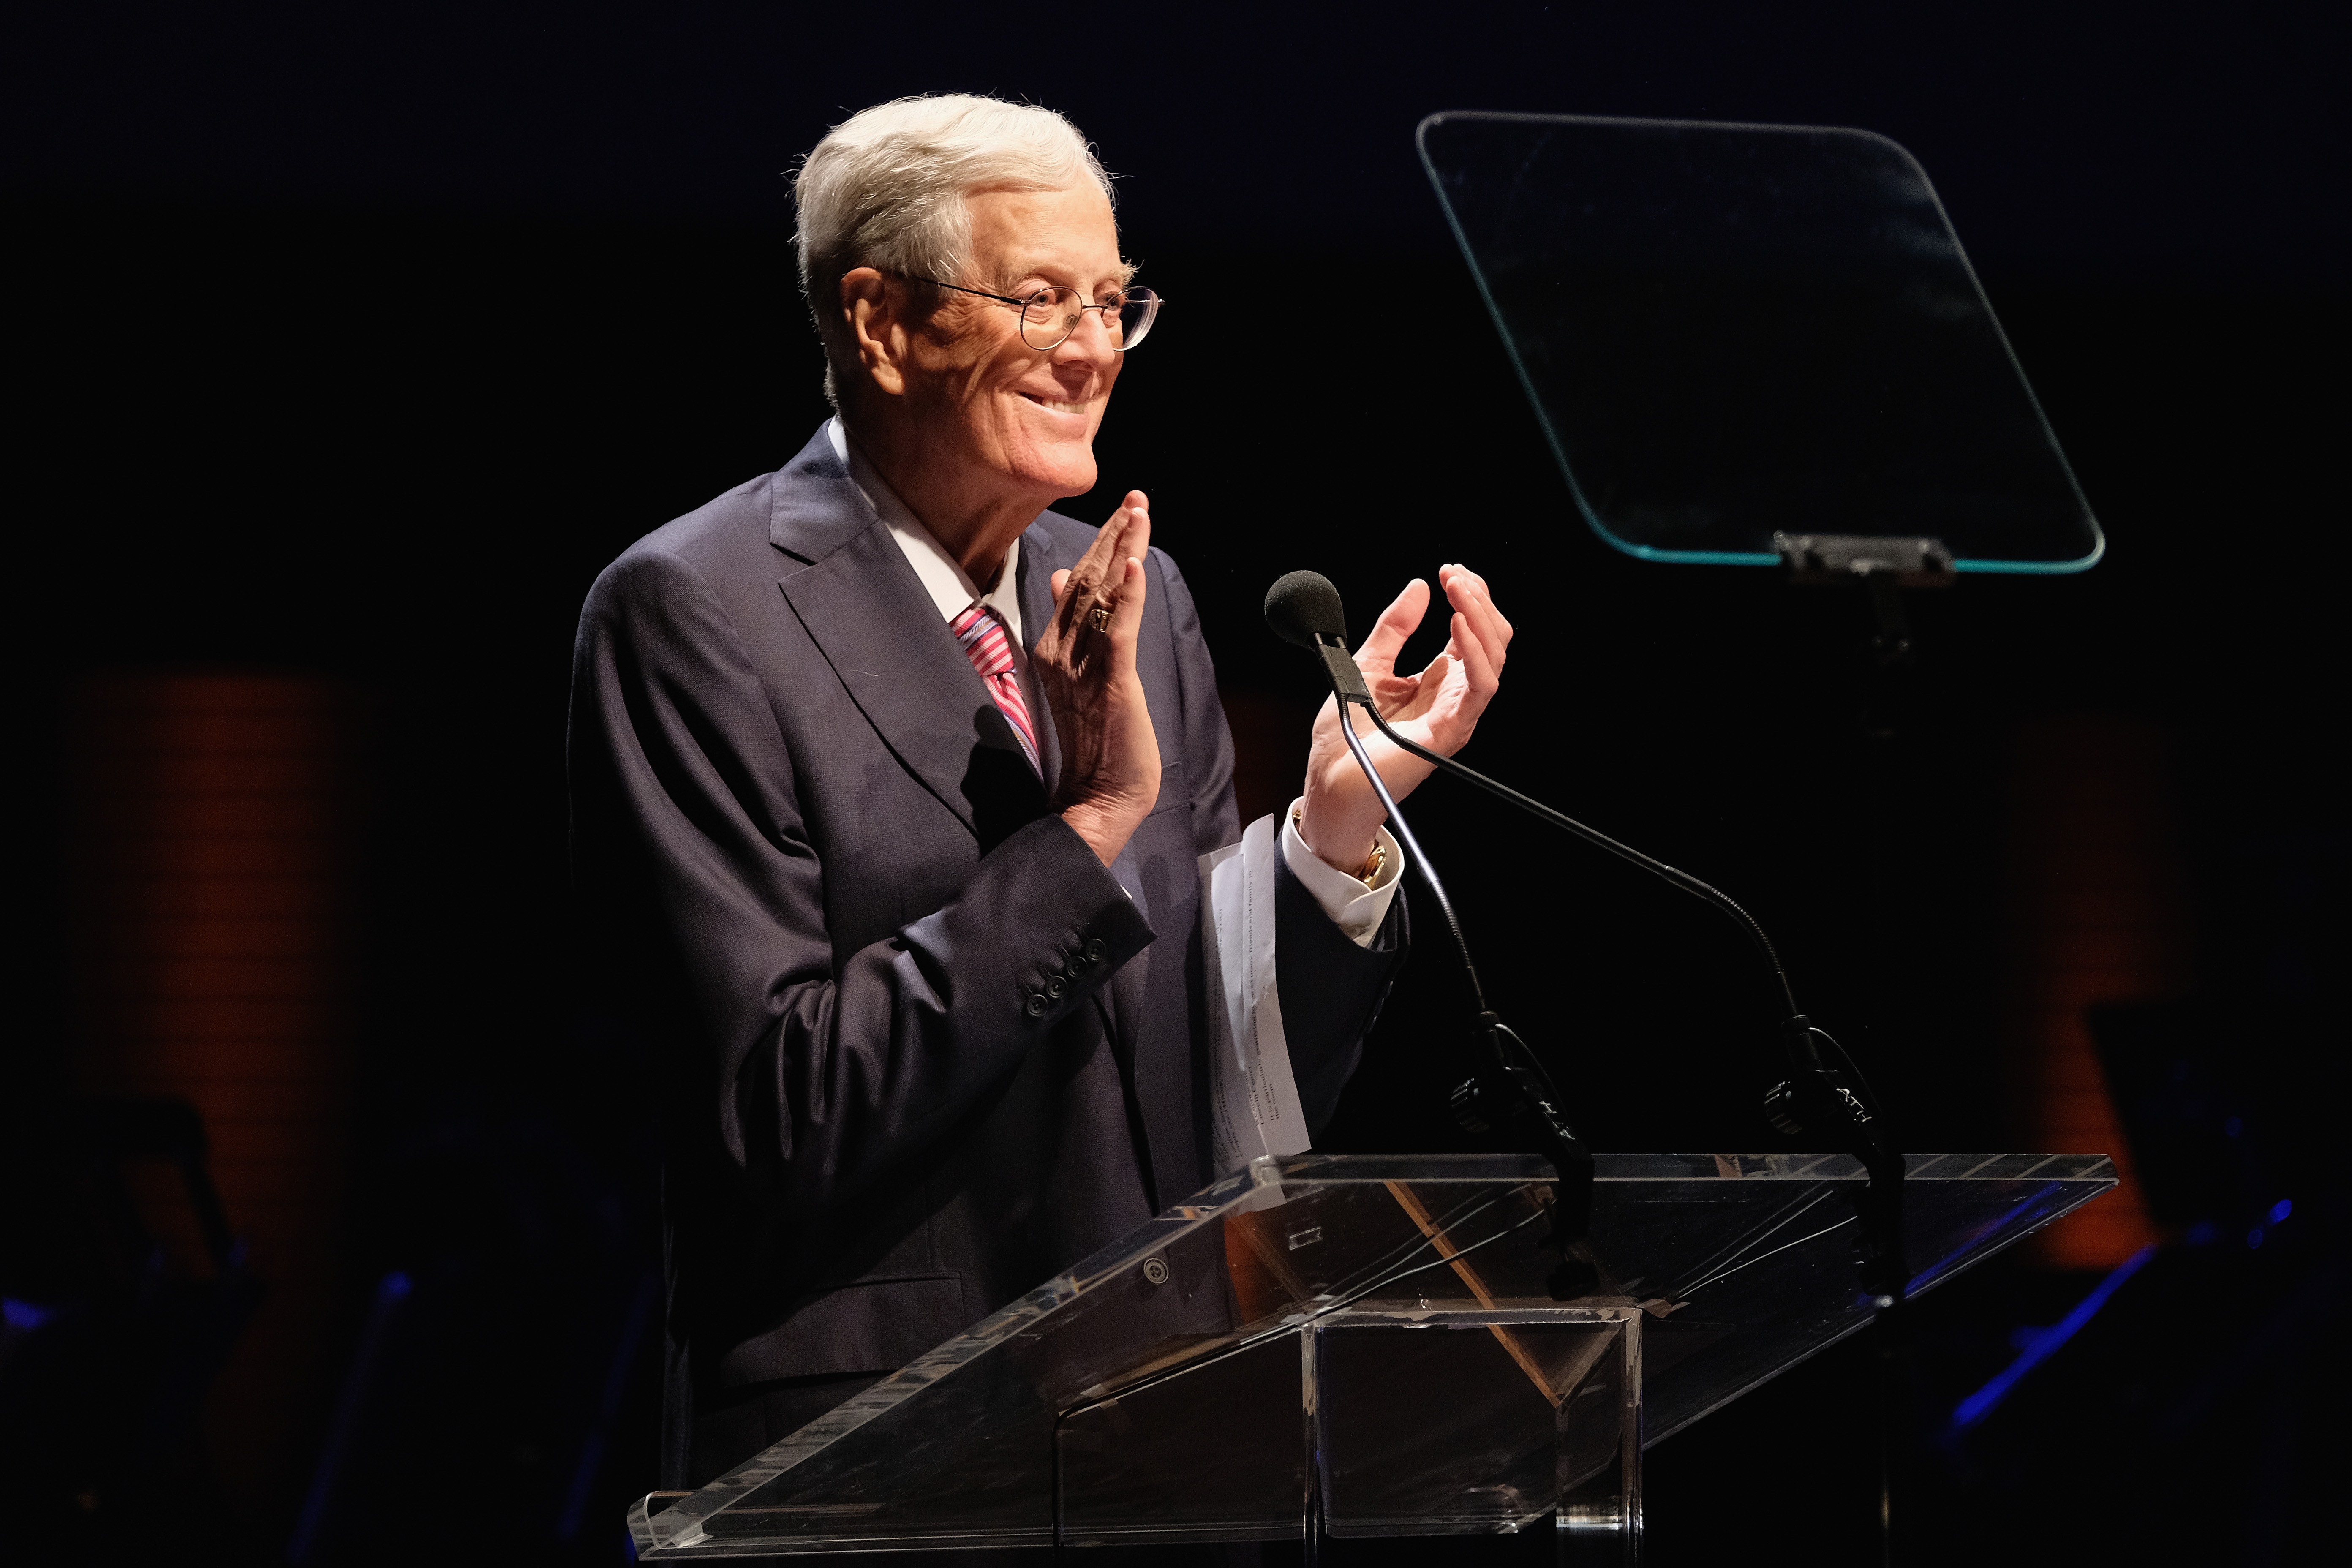 David Koch has died at 79. Here's how he changed American politics.